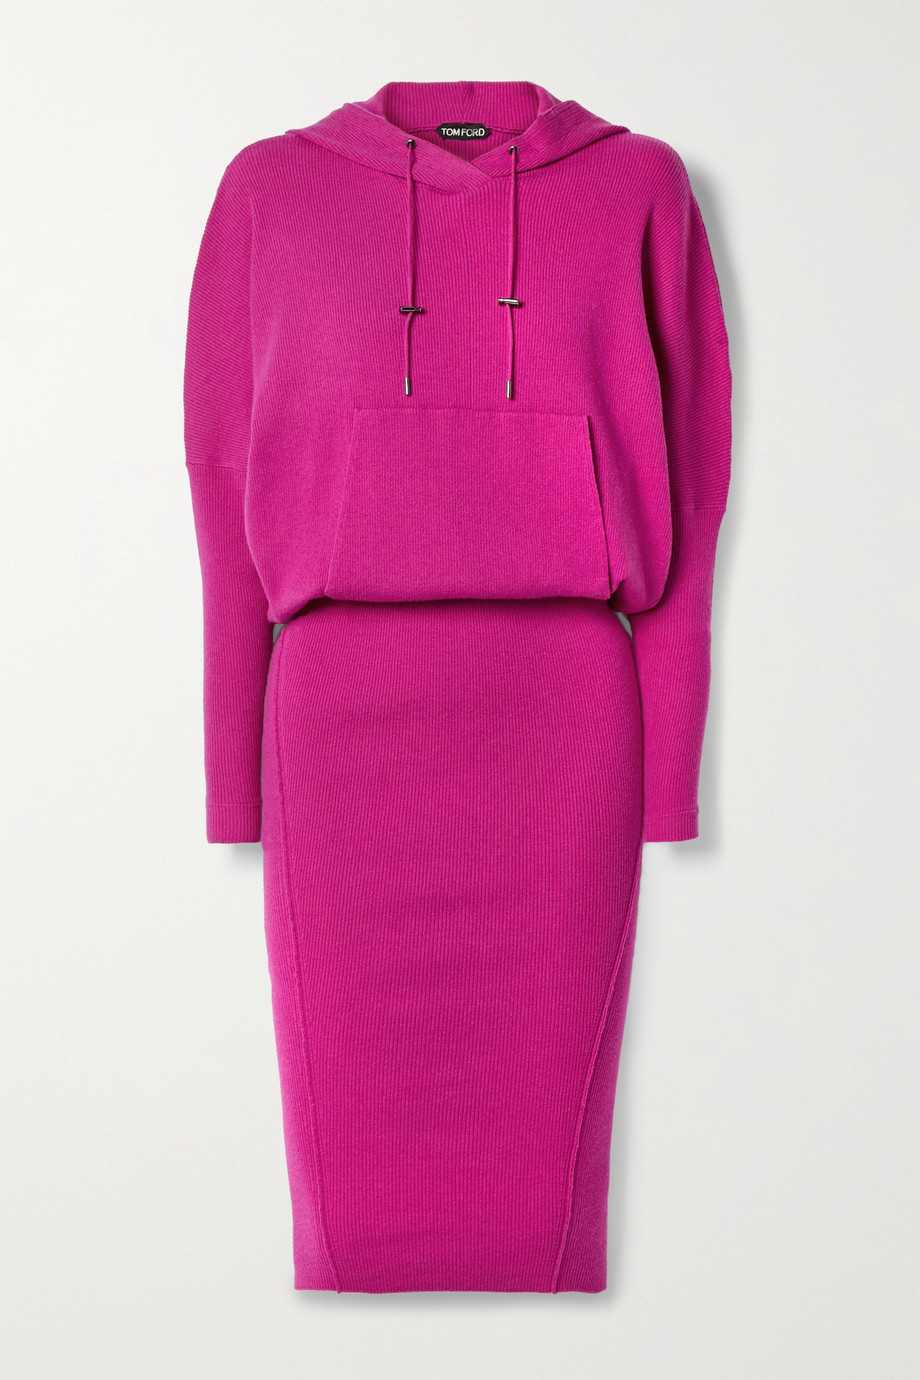 TOM FORD Hooded ribbed cashmere-blend dress